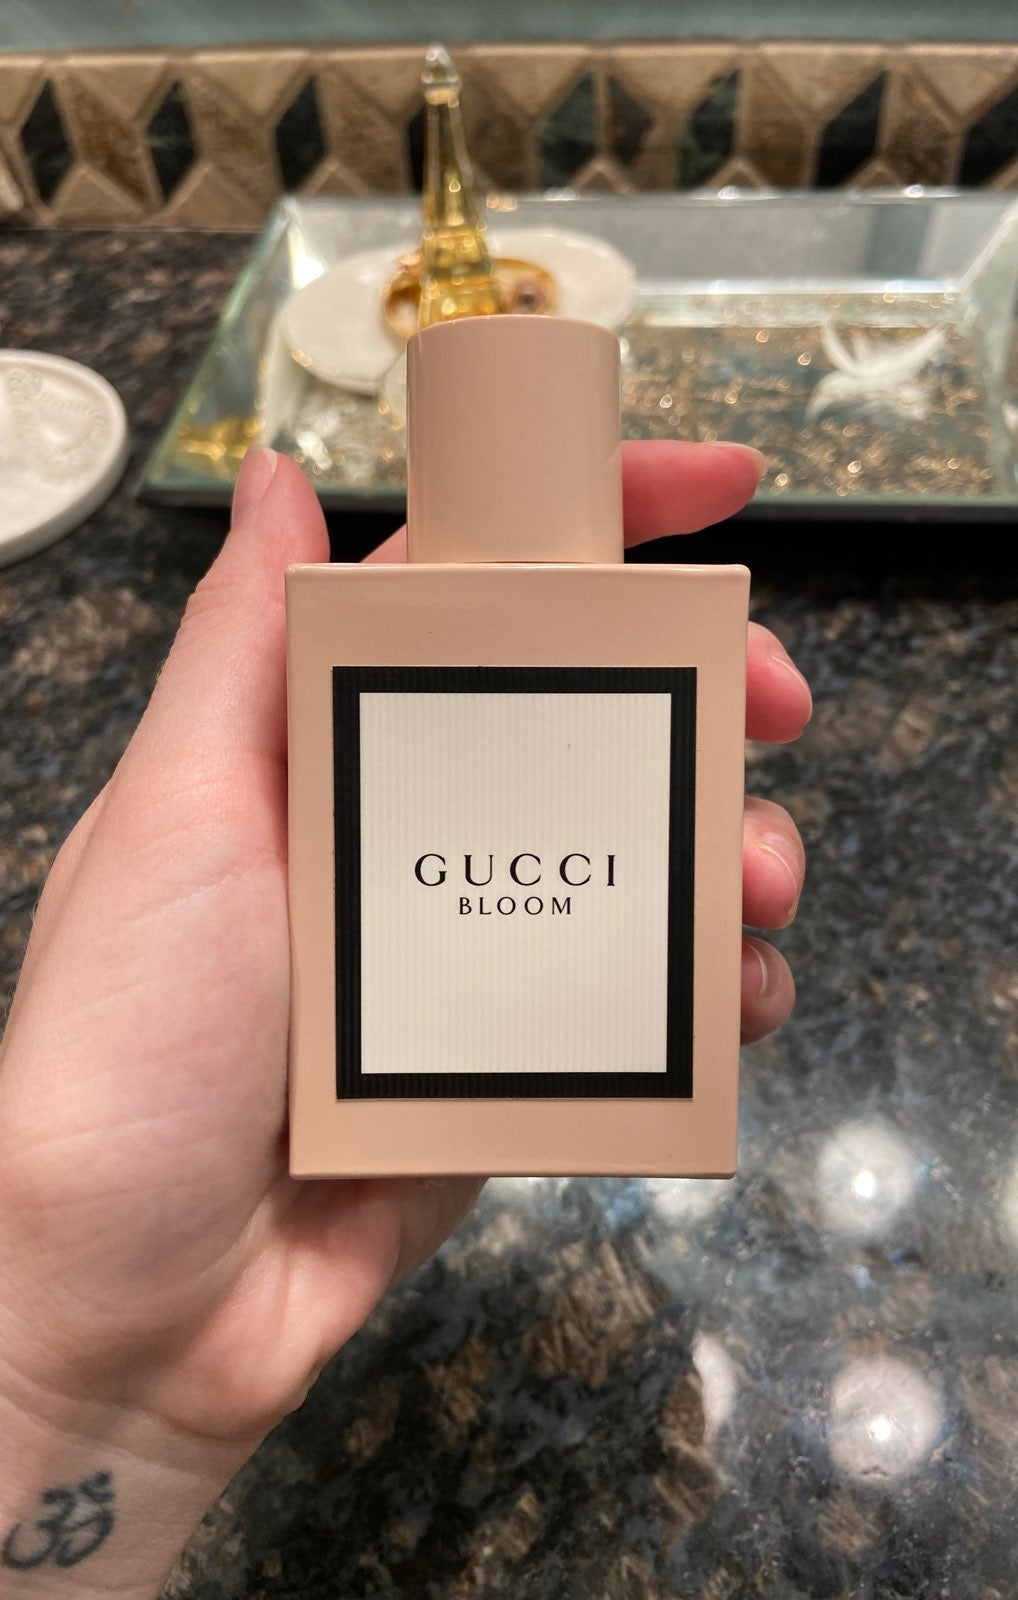 Gucci Bloom Eau de Parfume